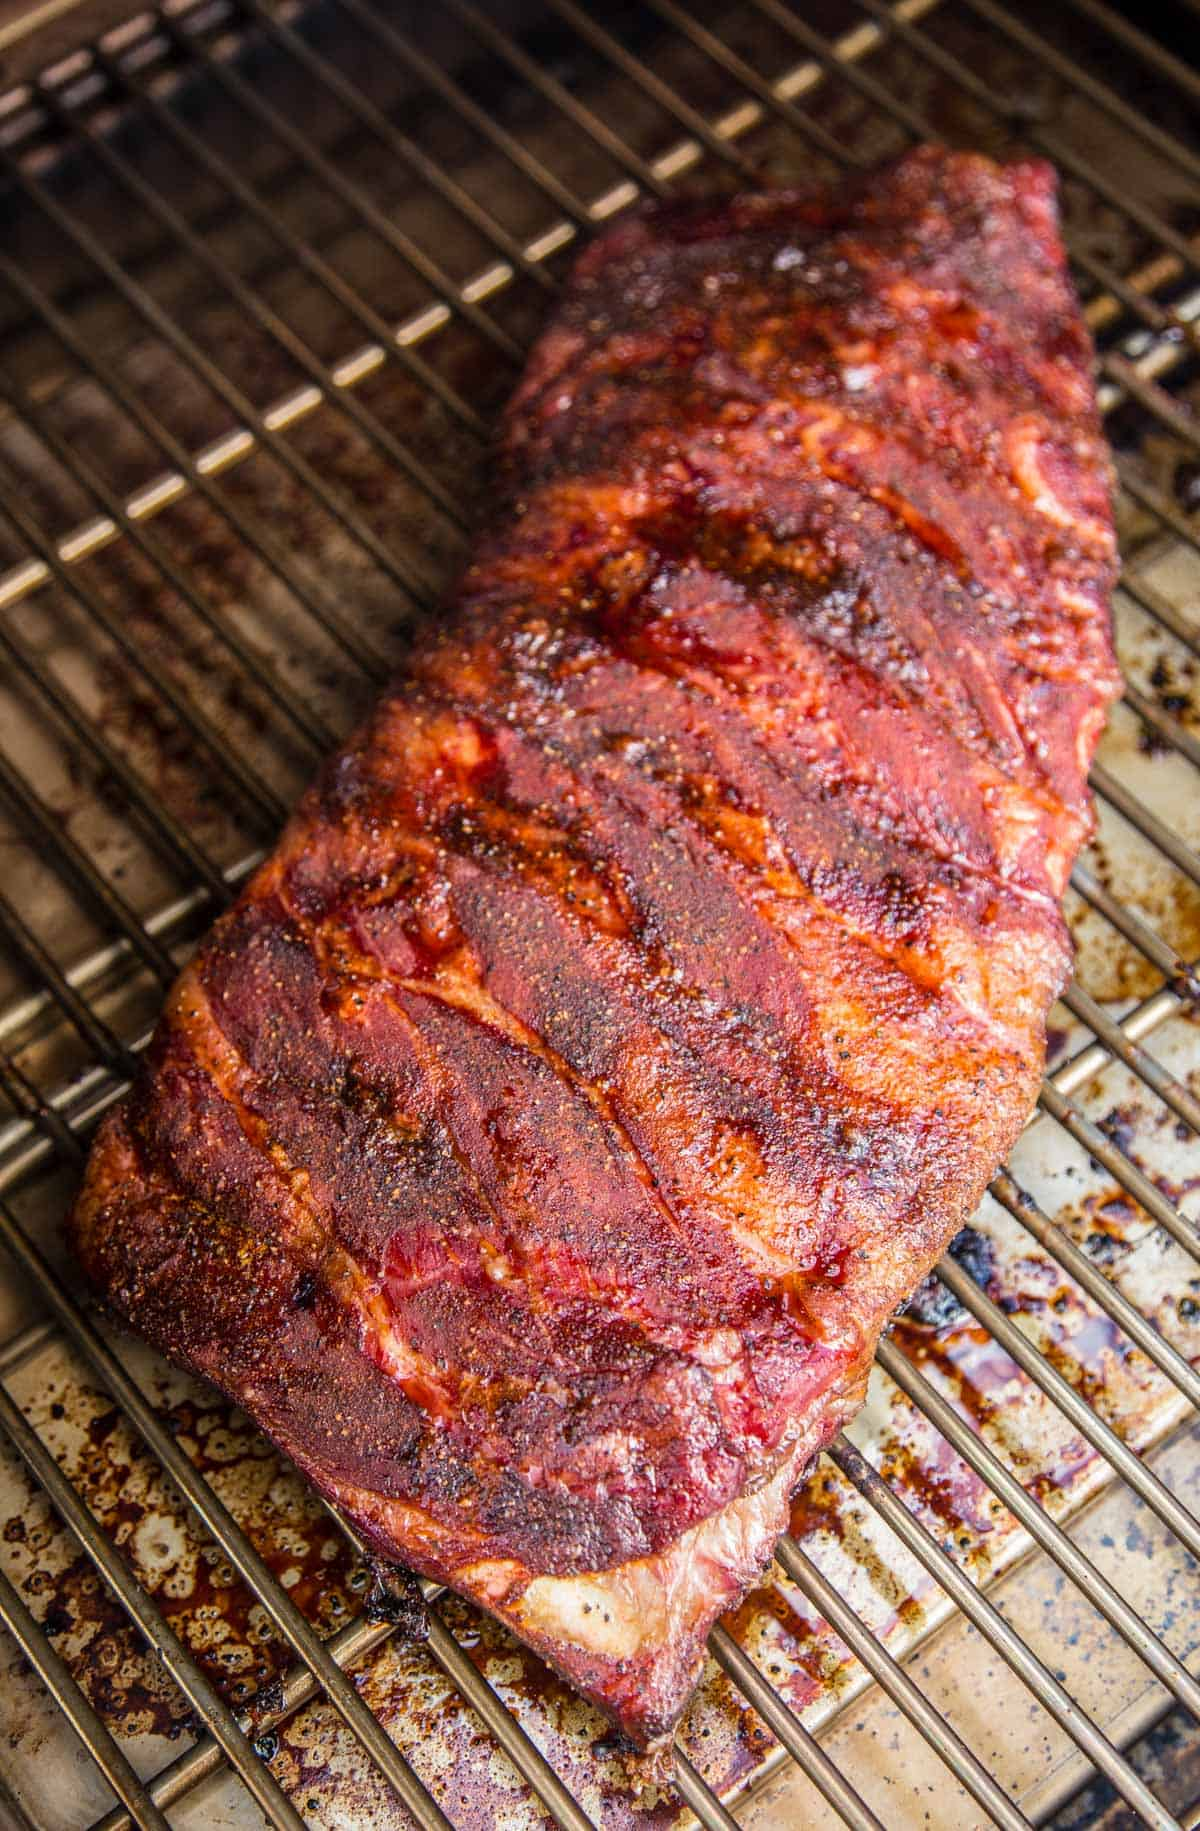 Smoked Pork Ribs being cooked on a MAC pellet grill